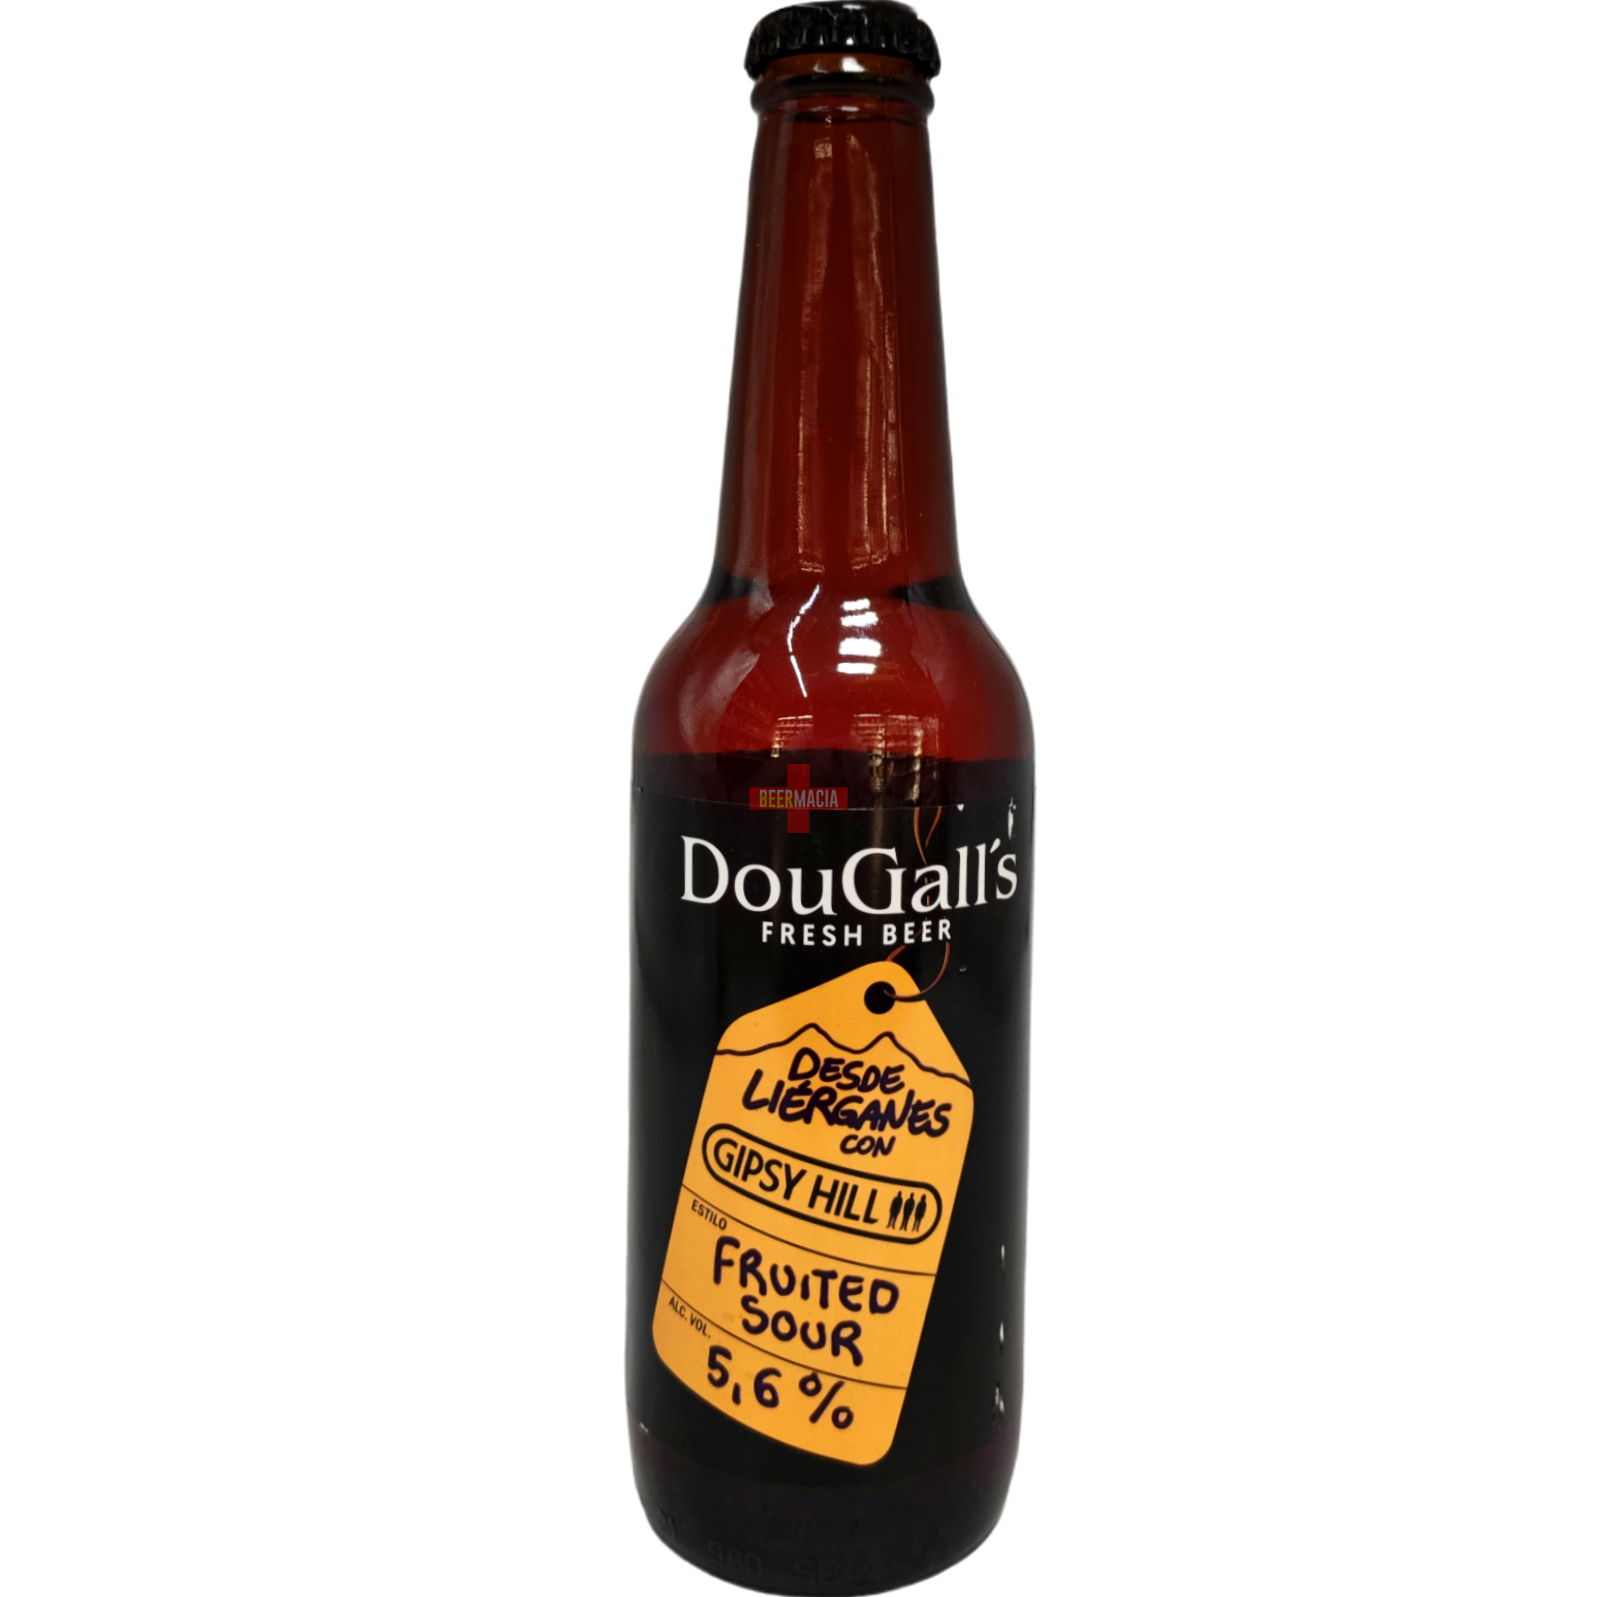 DouGall's - Desde Liérganes con Gipsy Hill Brew Fruited Sour 33cl